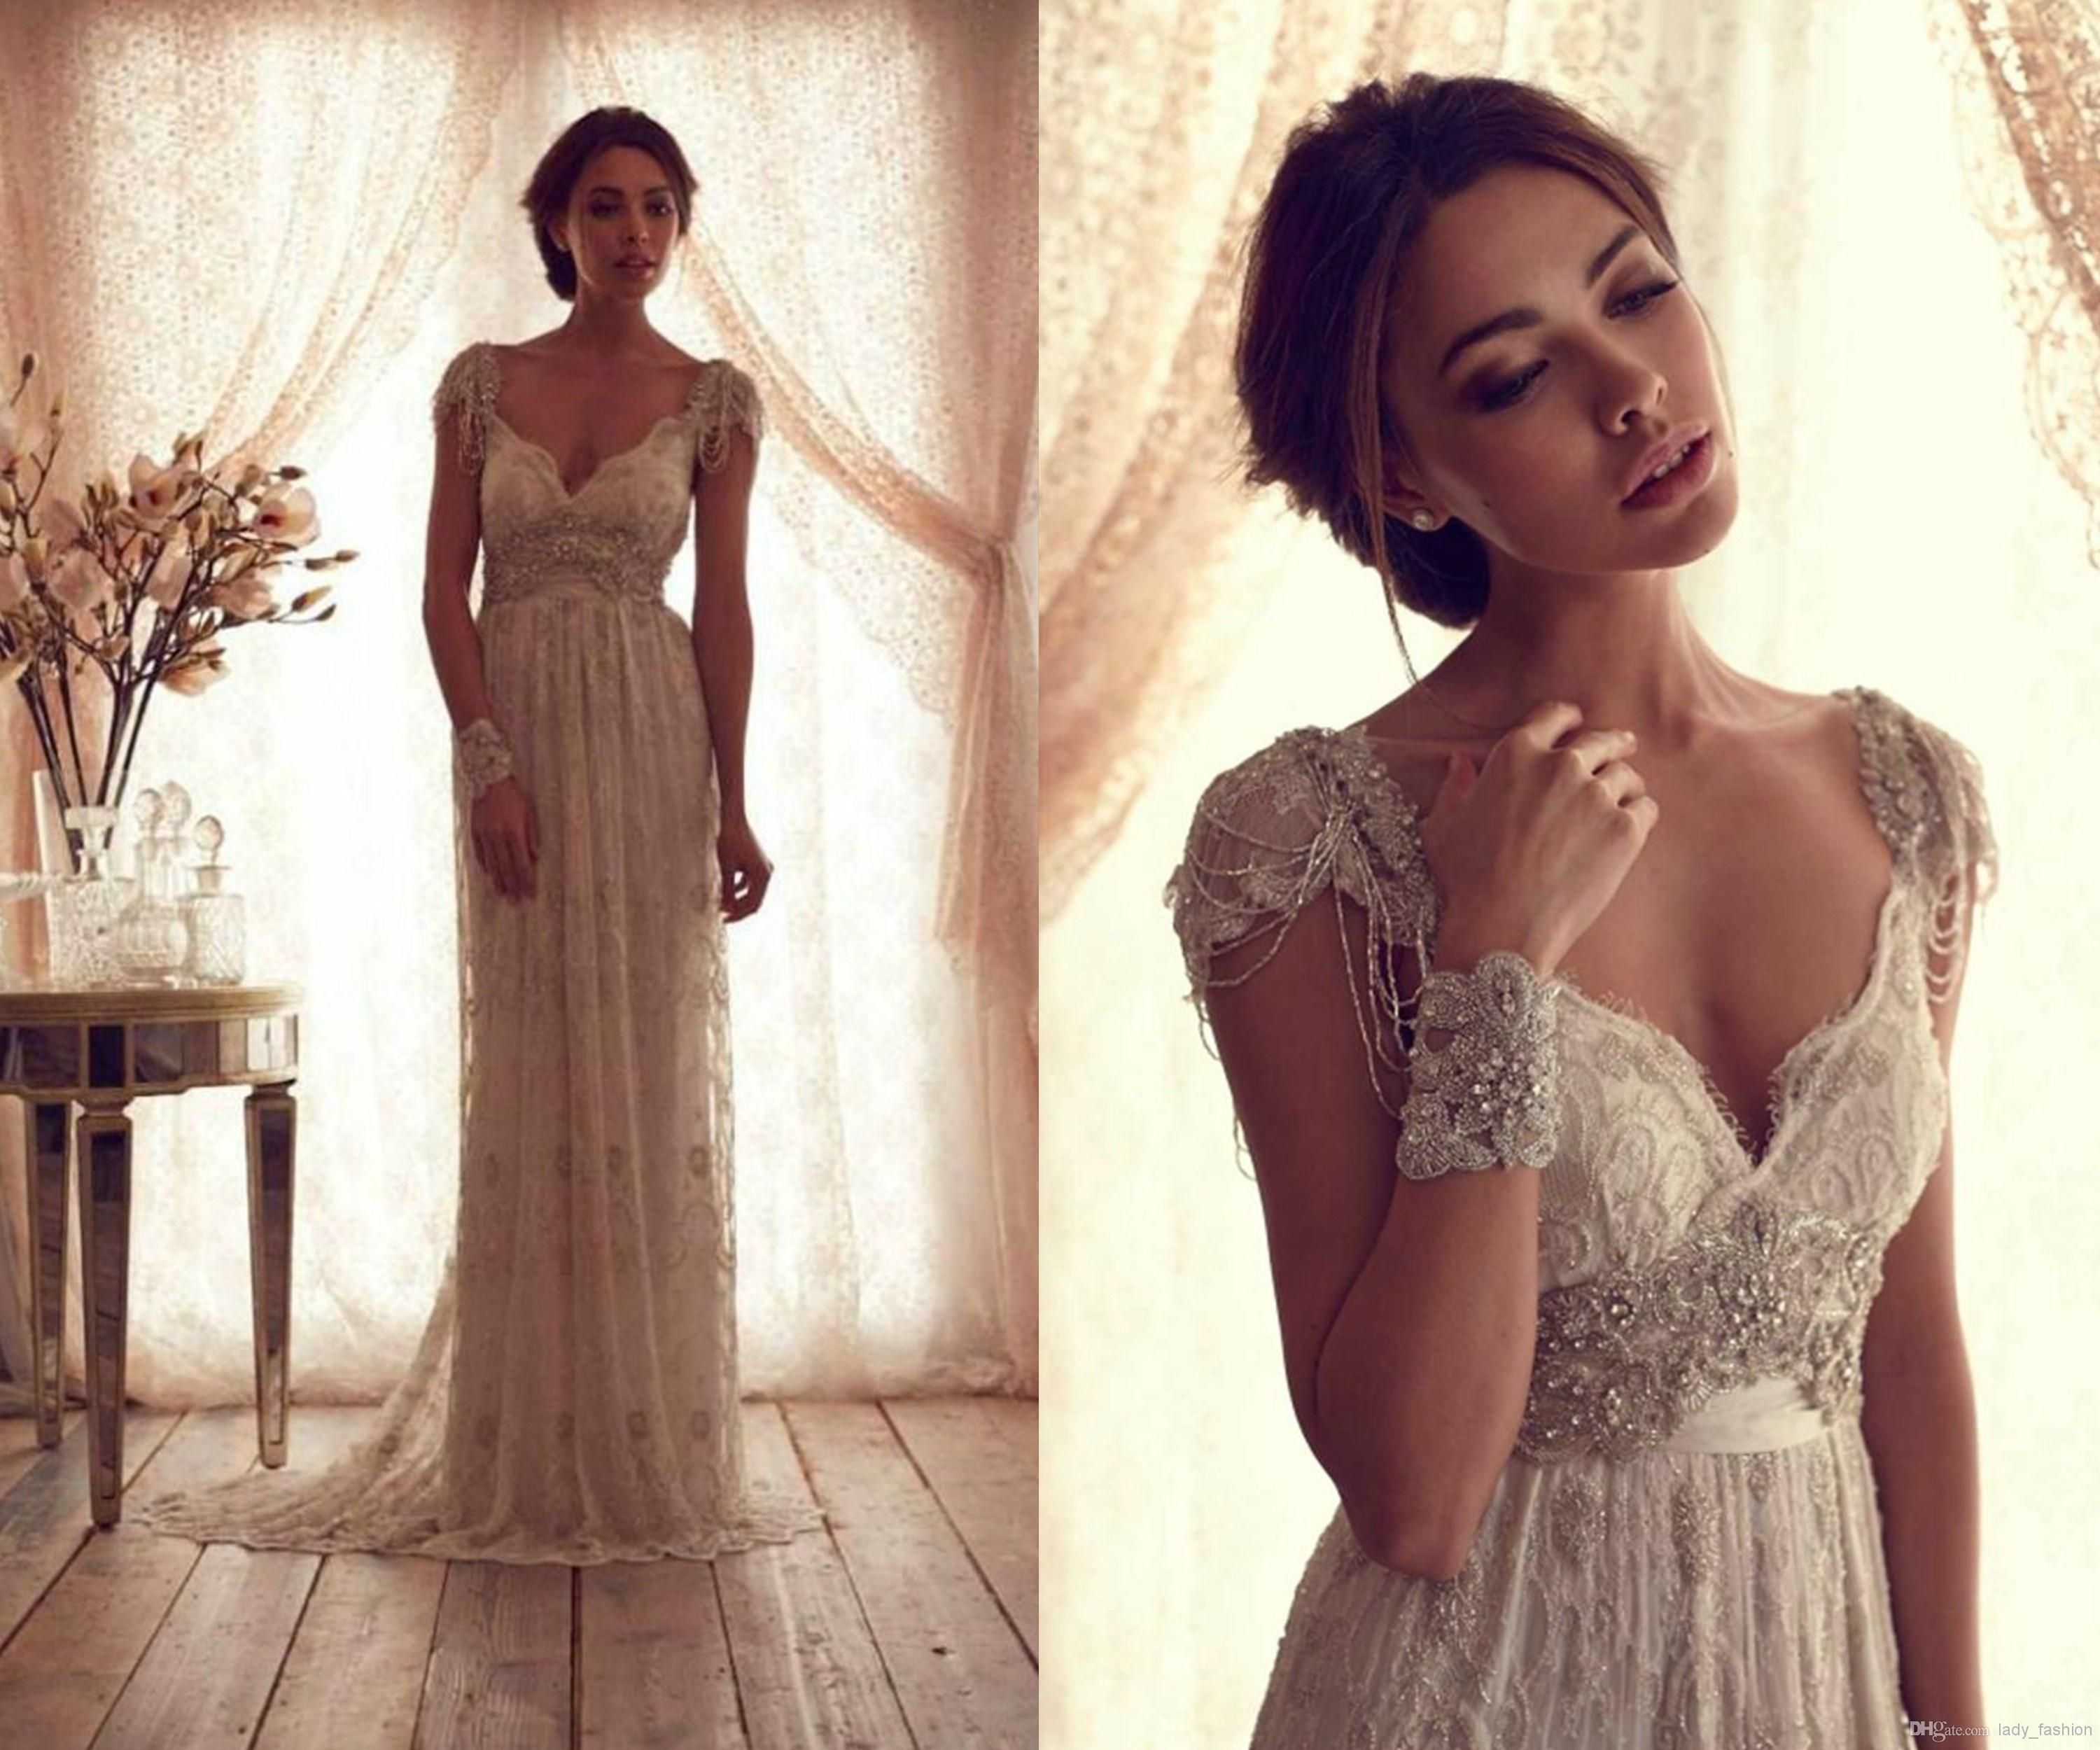 Wholesale empire wedding dresses buy 2014 vintage plus size wholesale empire wedding dresses buy 2014 vintage plus size maternity wedding dresses anna campbell floor ombrellifo Choice Image